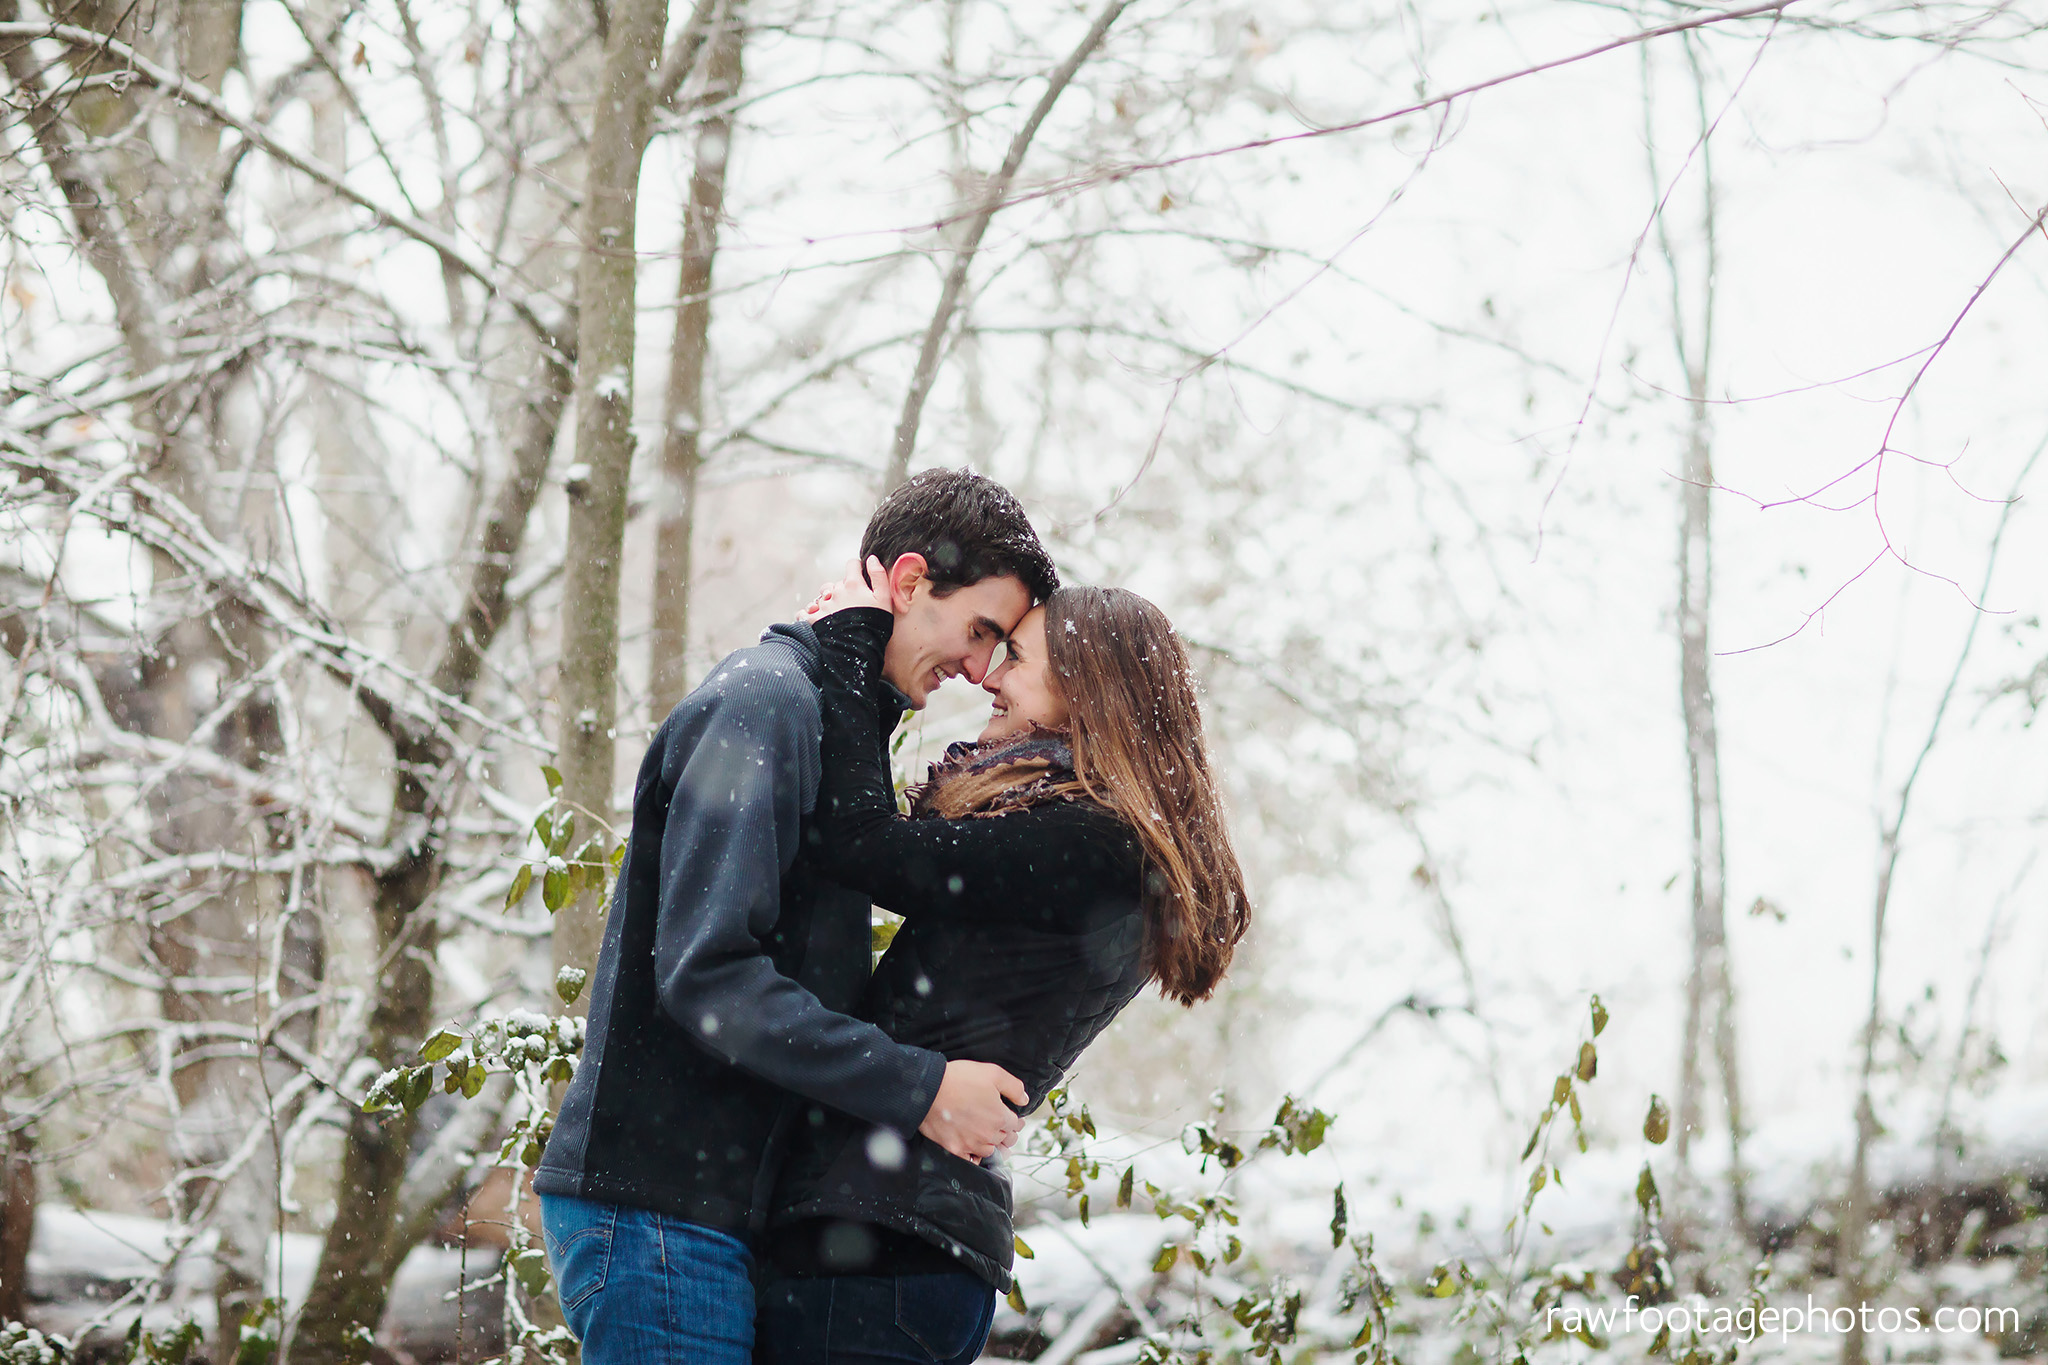 london_ontario_wedding_photographer-snowy_engagement_session-winter-barn-farm-snowflakes-blizzard-raw_footage_photography024.jpg